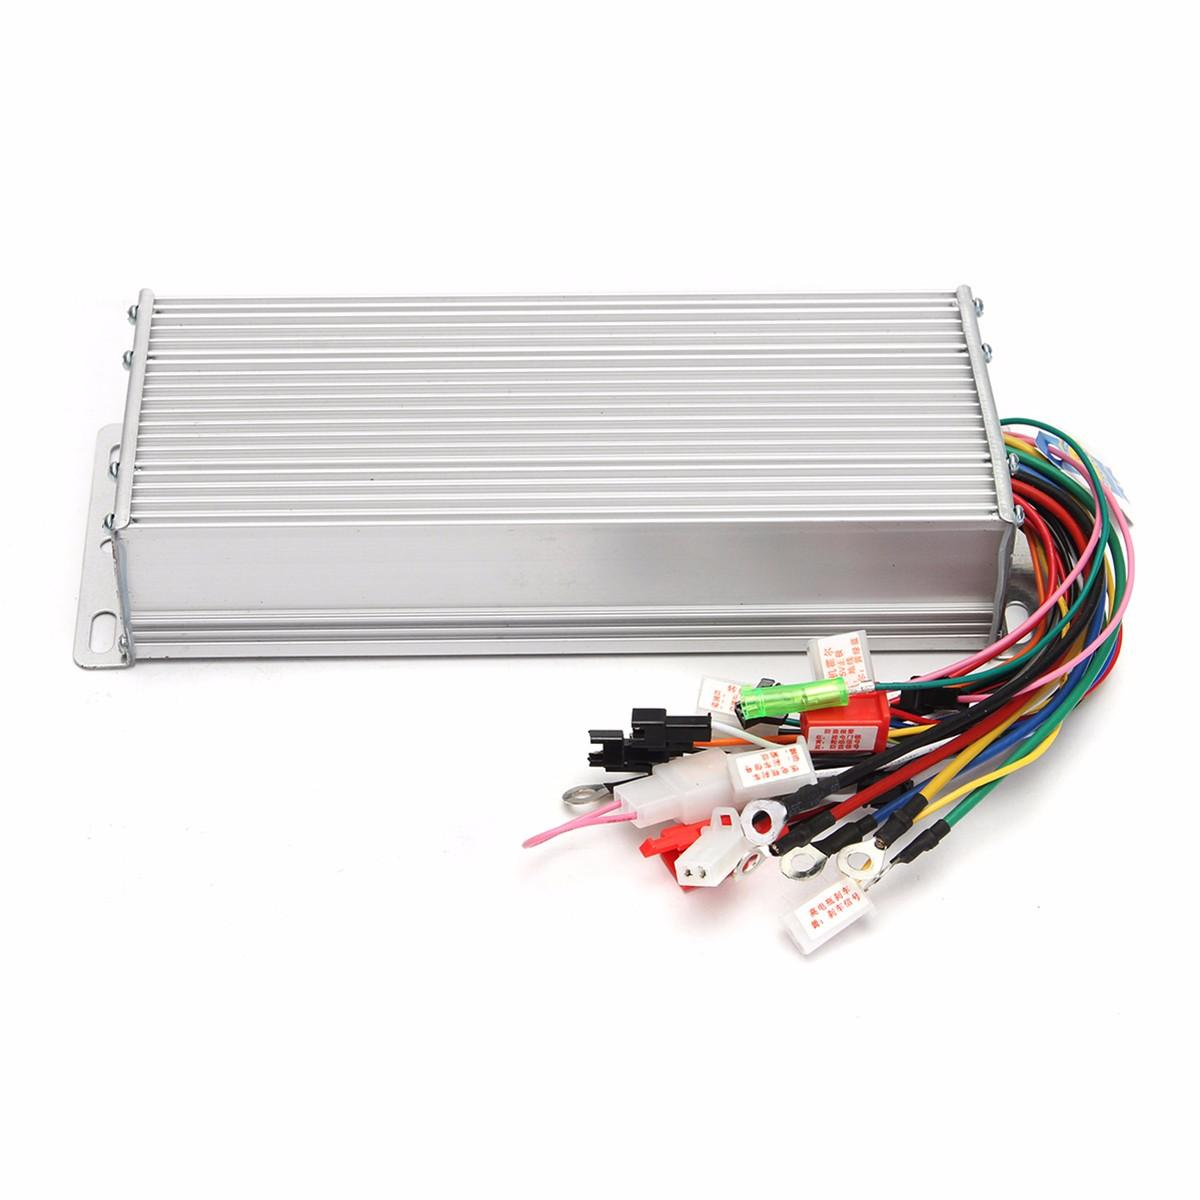 Dc 48v 1500w Brushless Motor Controller For E Bike Scooter Electric Wiring Diagram Bicycle